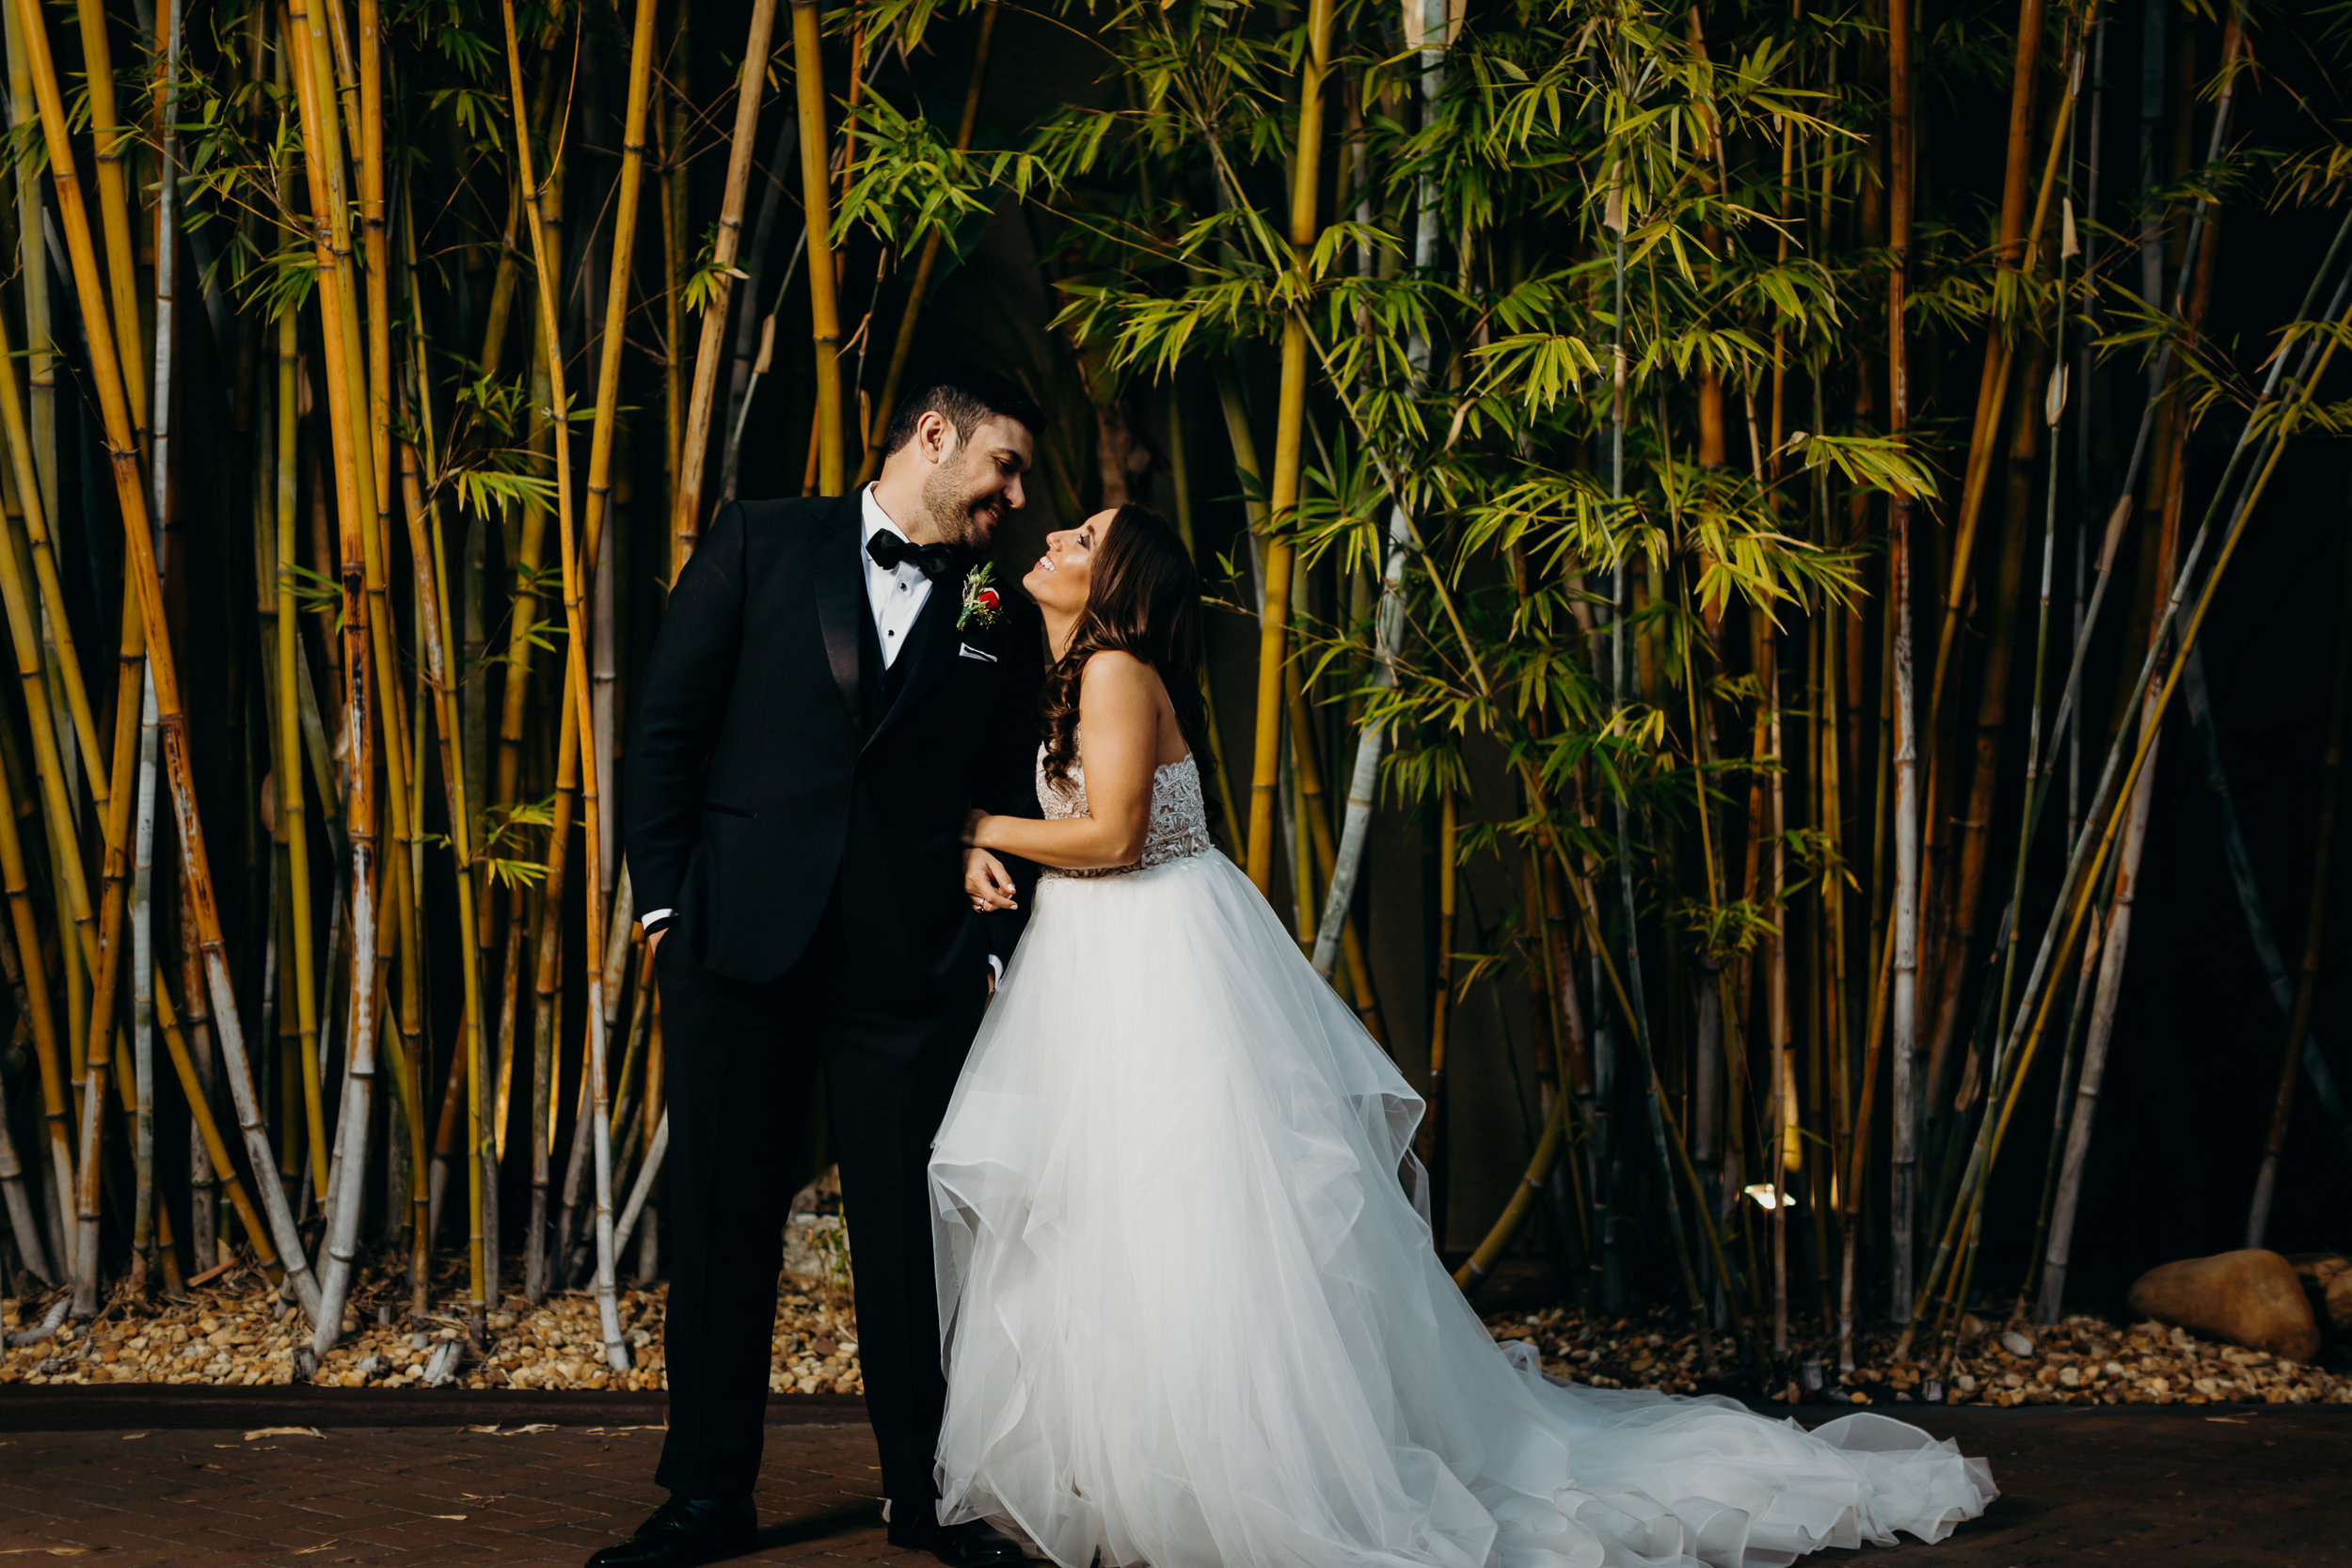 Gianna Keiko Atlanta San Francisco NYC Wedding Engagement Wedding Elopement Photographer_Sneak Peek-47.jpg